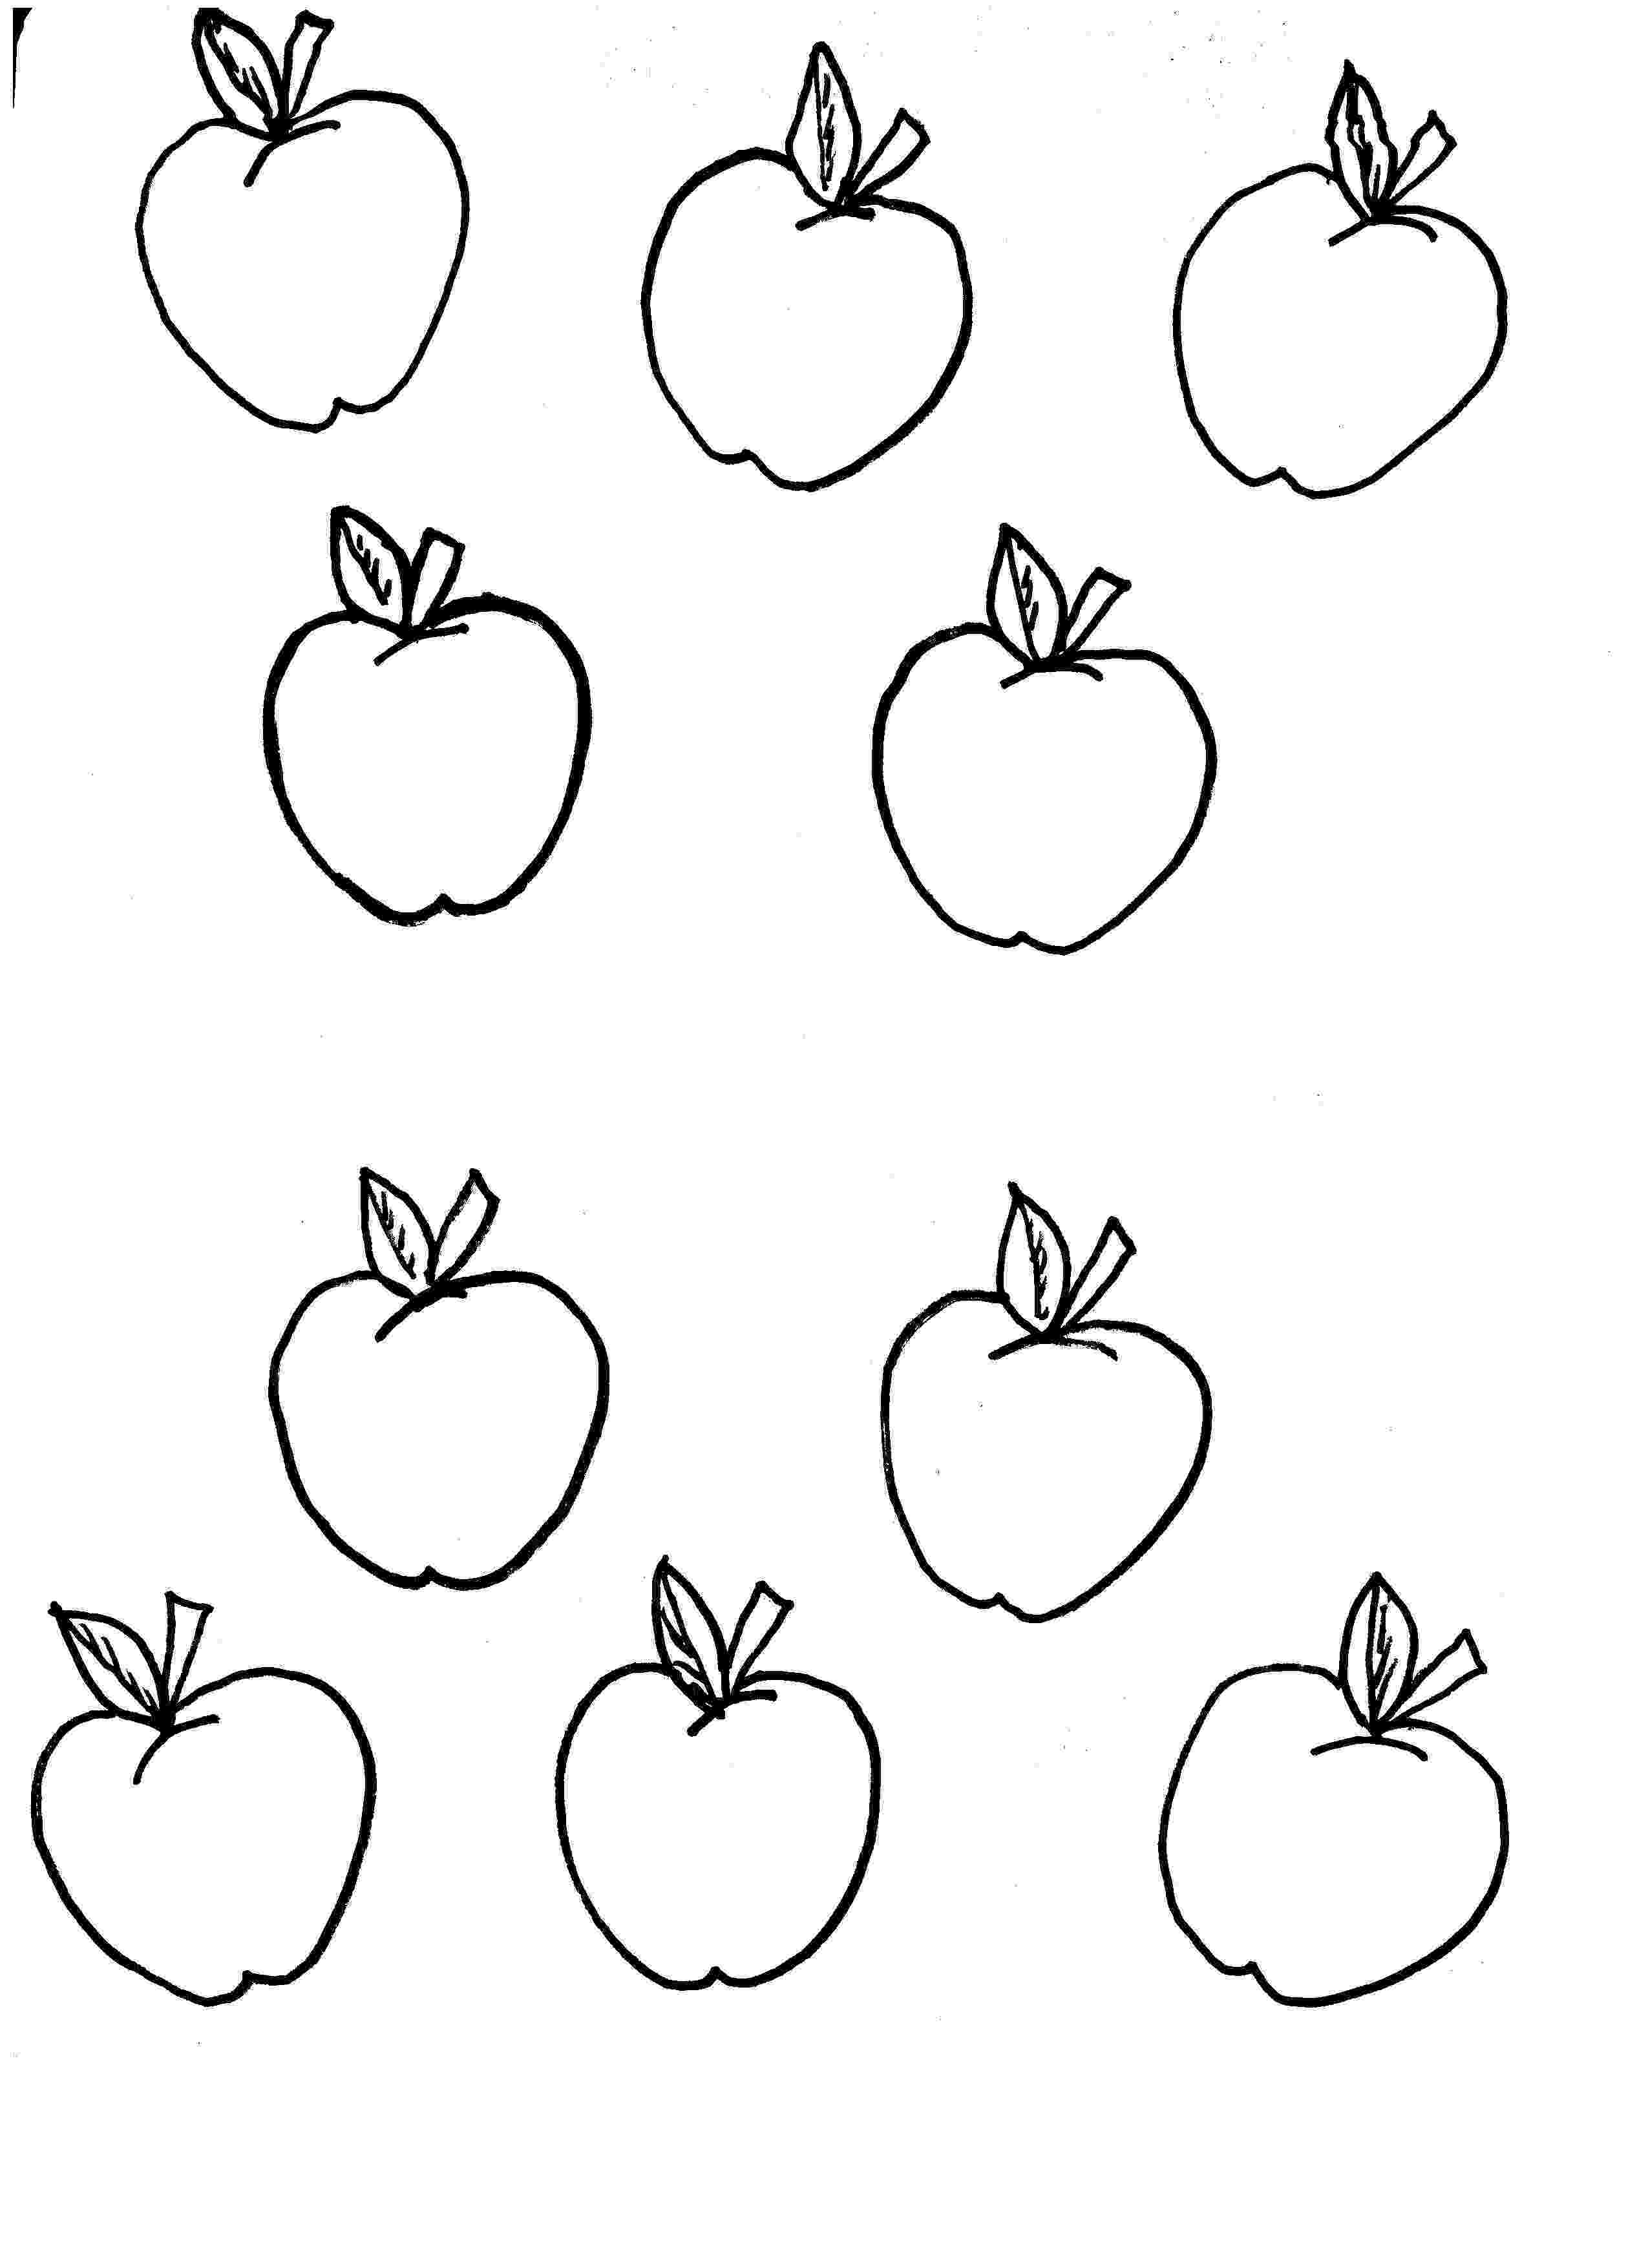 pictures of apples for kids free printable apple coloring pages for kids apple for of pictures apples kids